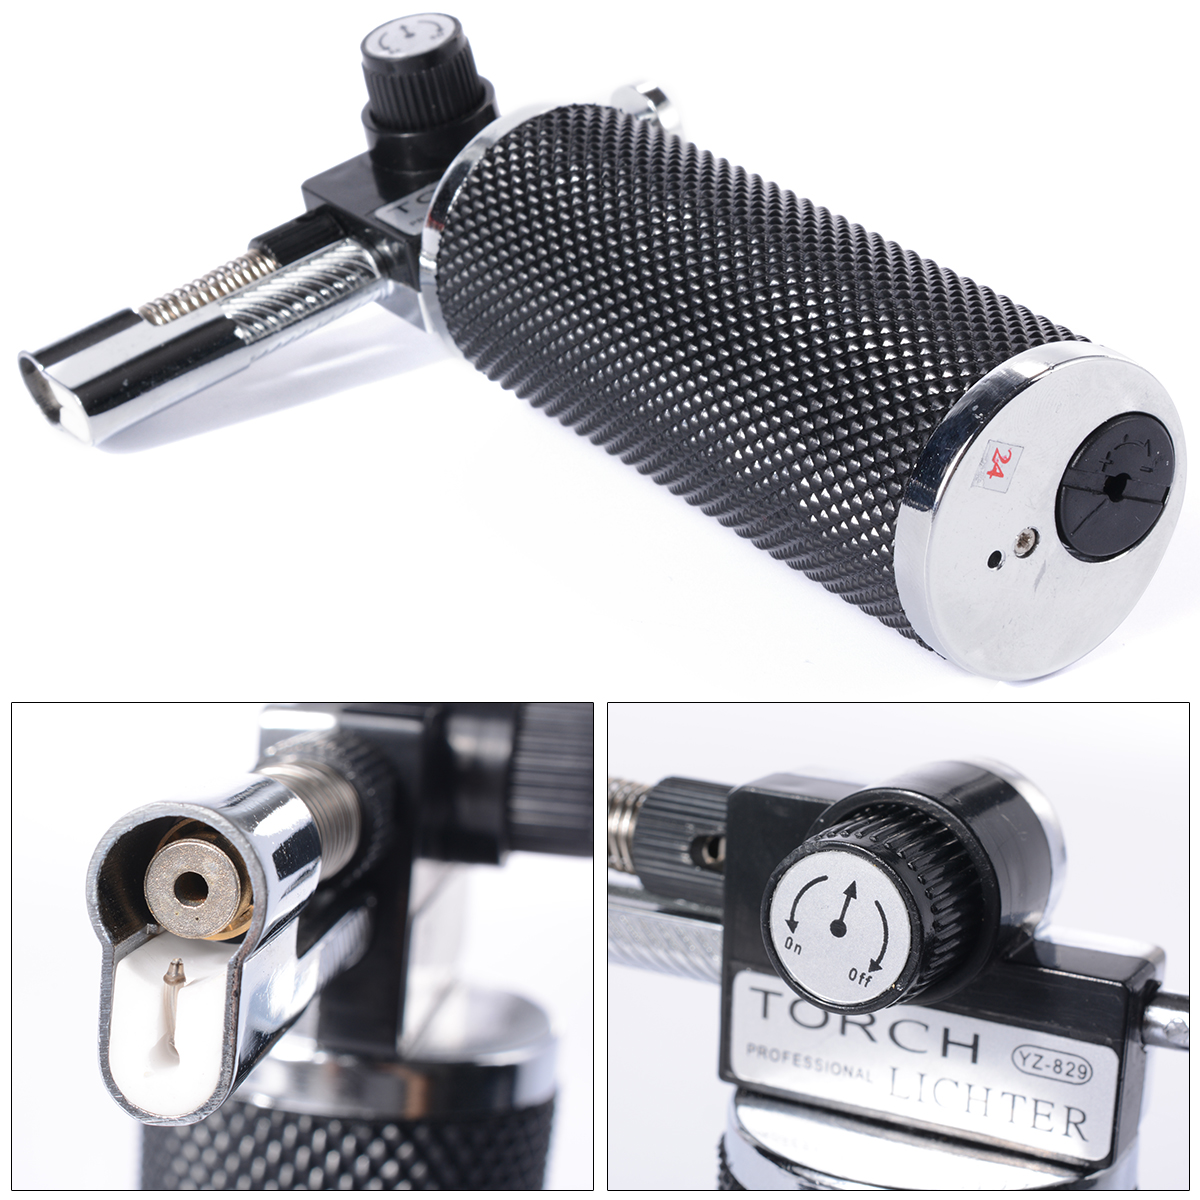 Metal Gun Hot Butane Gas Welding Torches kitchen Tool Gas lighter churrasco corte Repeatable Inflatable Gadget BI016+